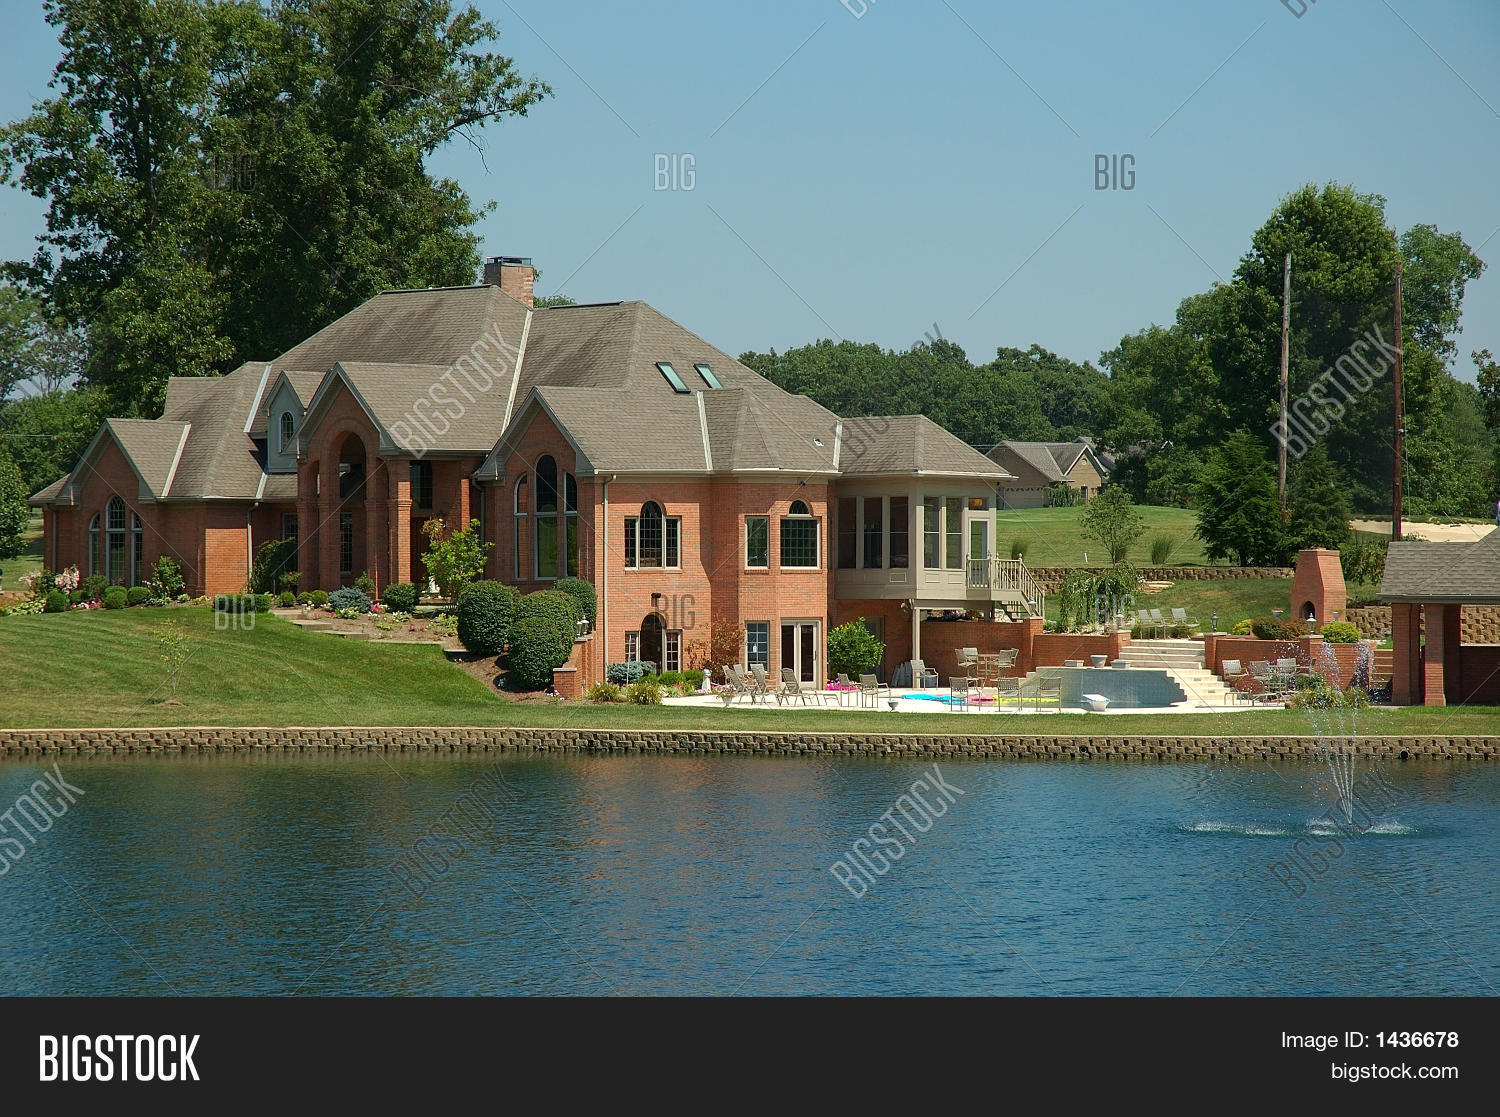 Private lakeside image photo free trial bigstock for Lakeside cabins for sale